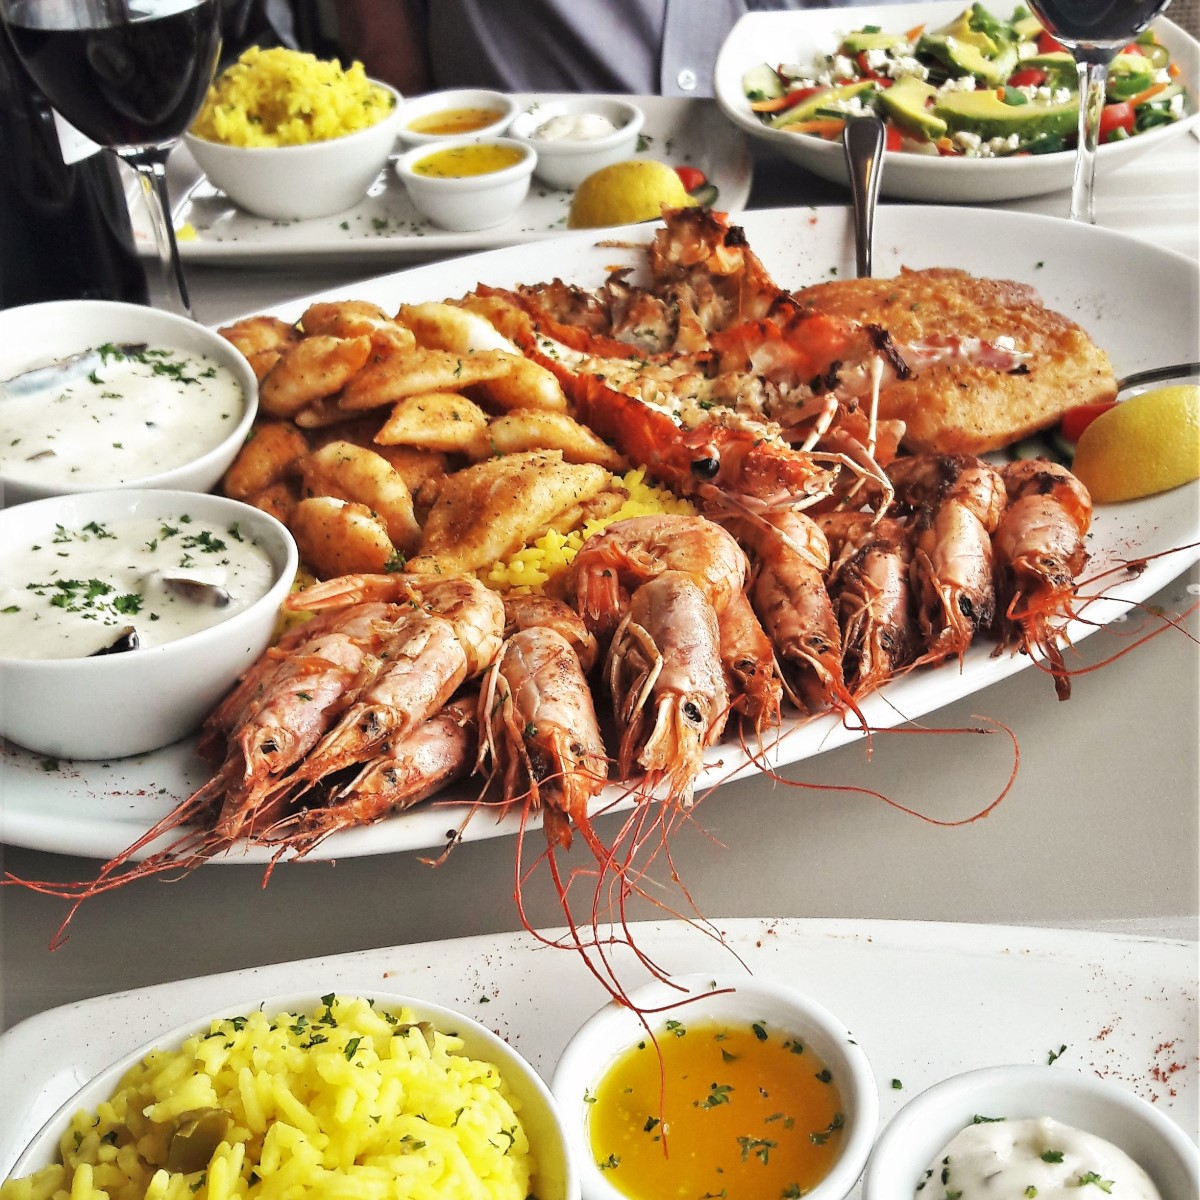 A sharing platter of seafood.